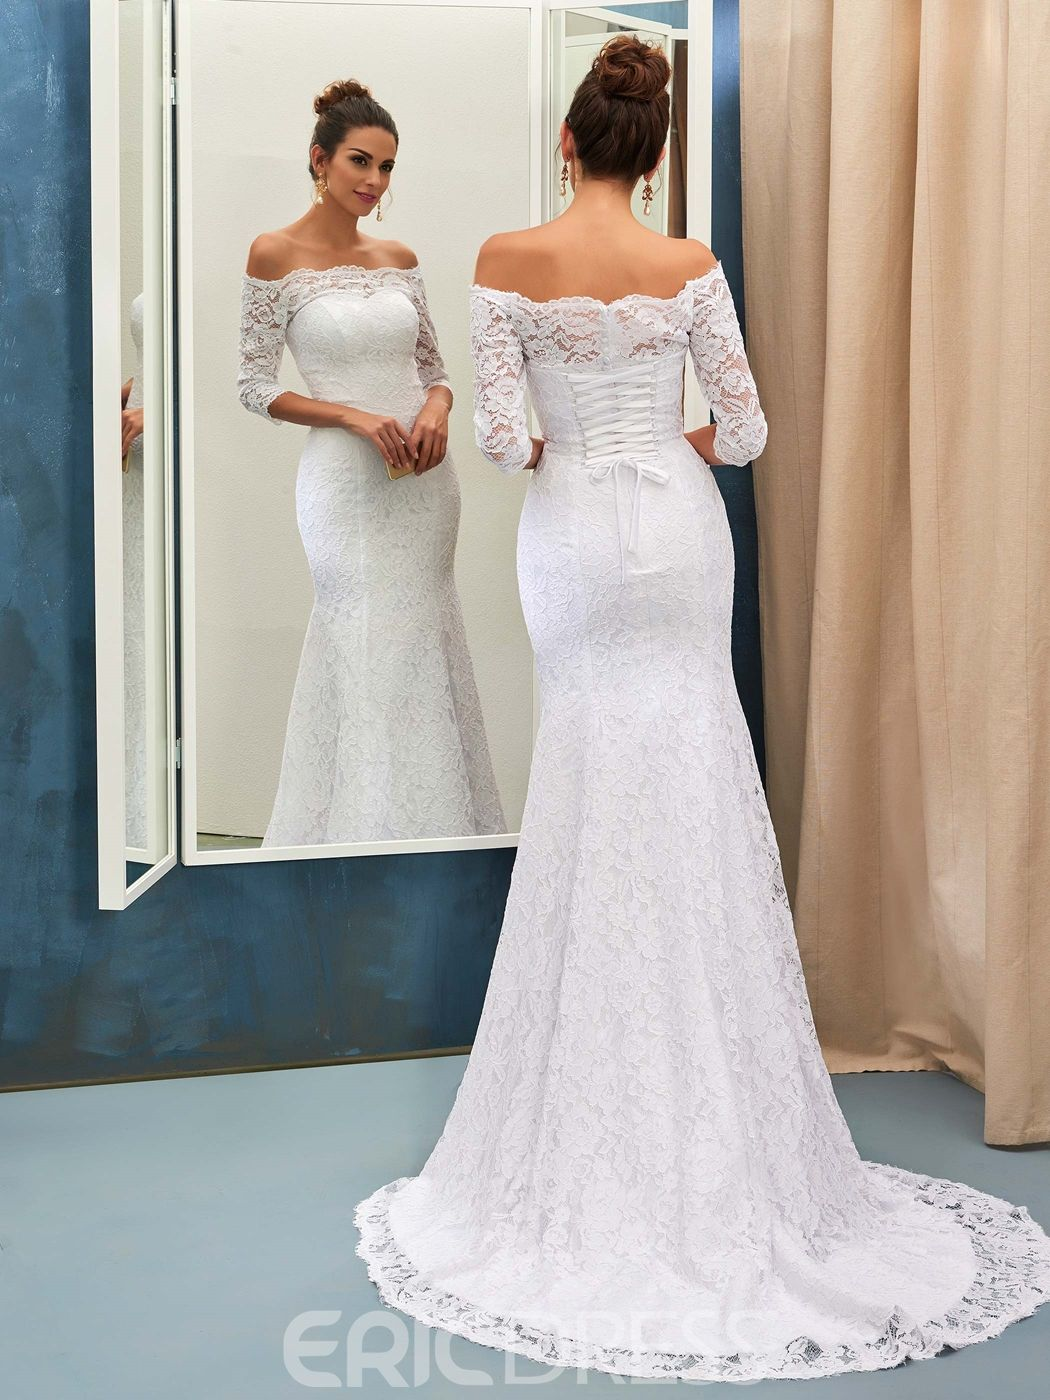 Lace mermaid off the shoulder wedding dress with sleeves wedding